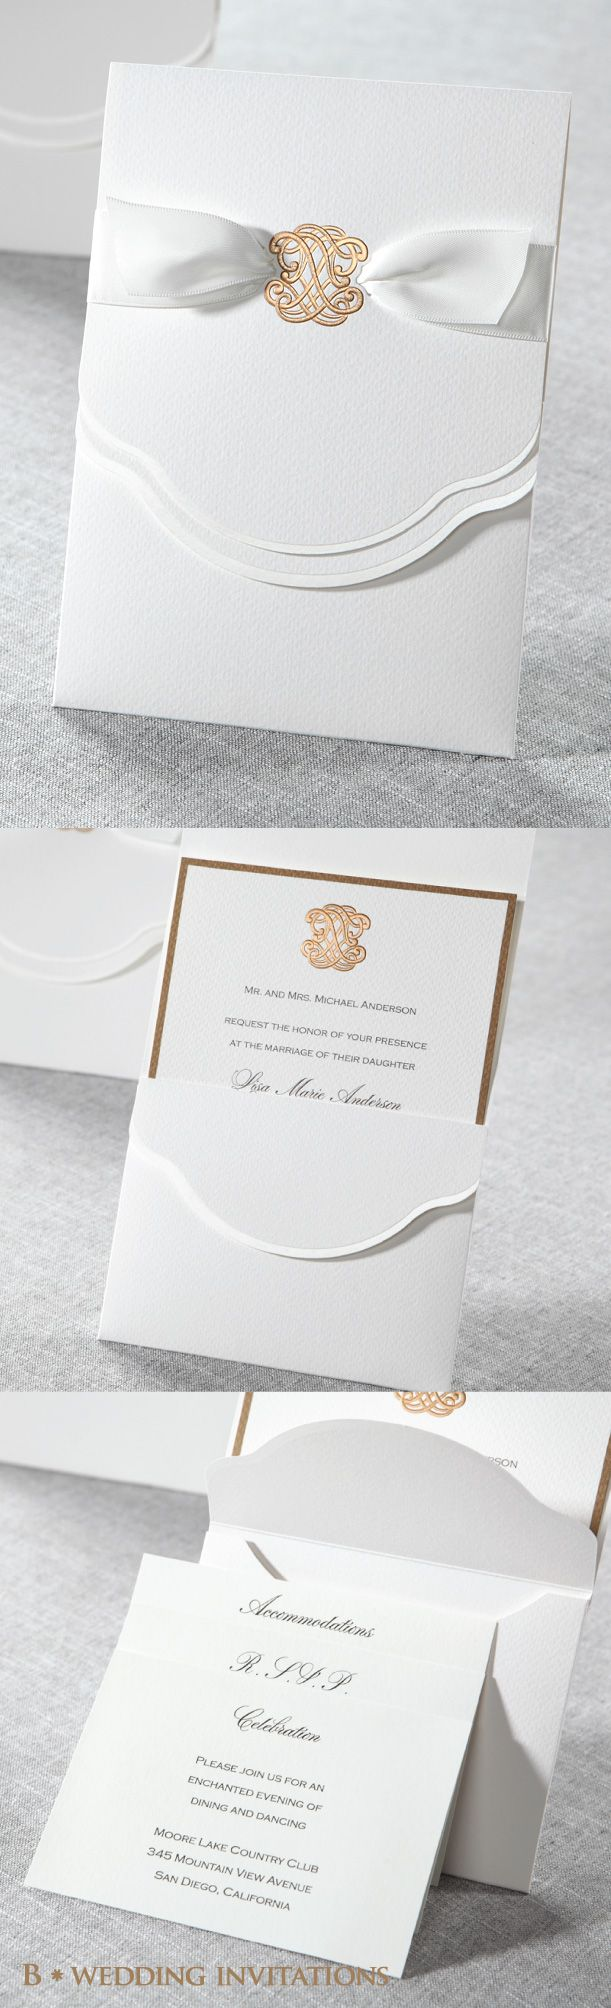 Urban Couture with a Bow by B Wedding Invitations